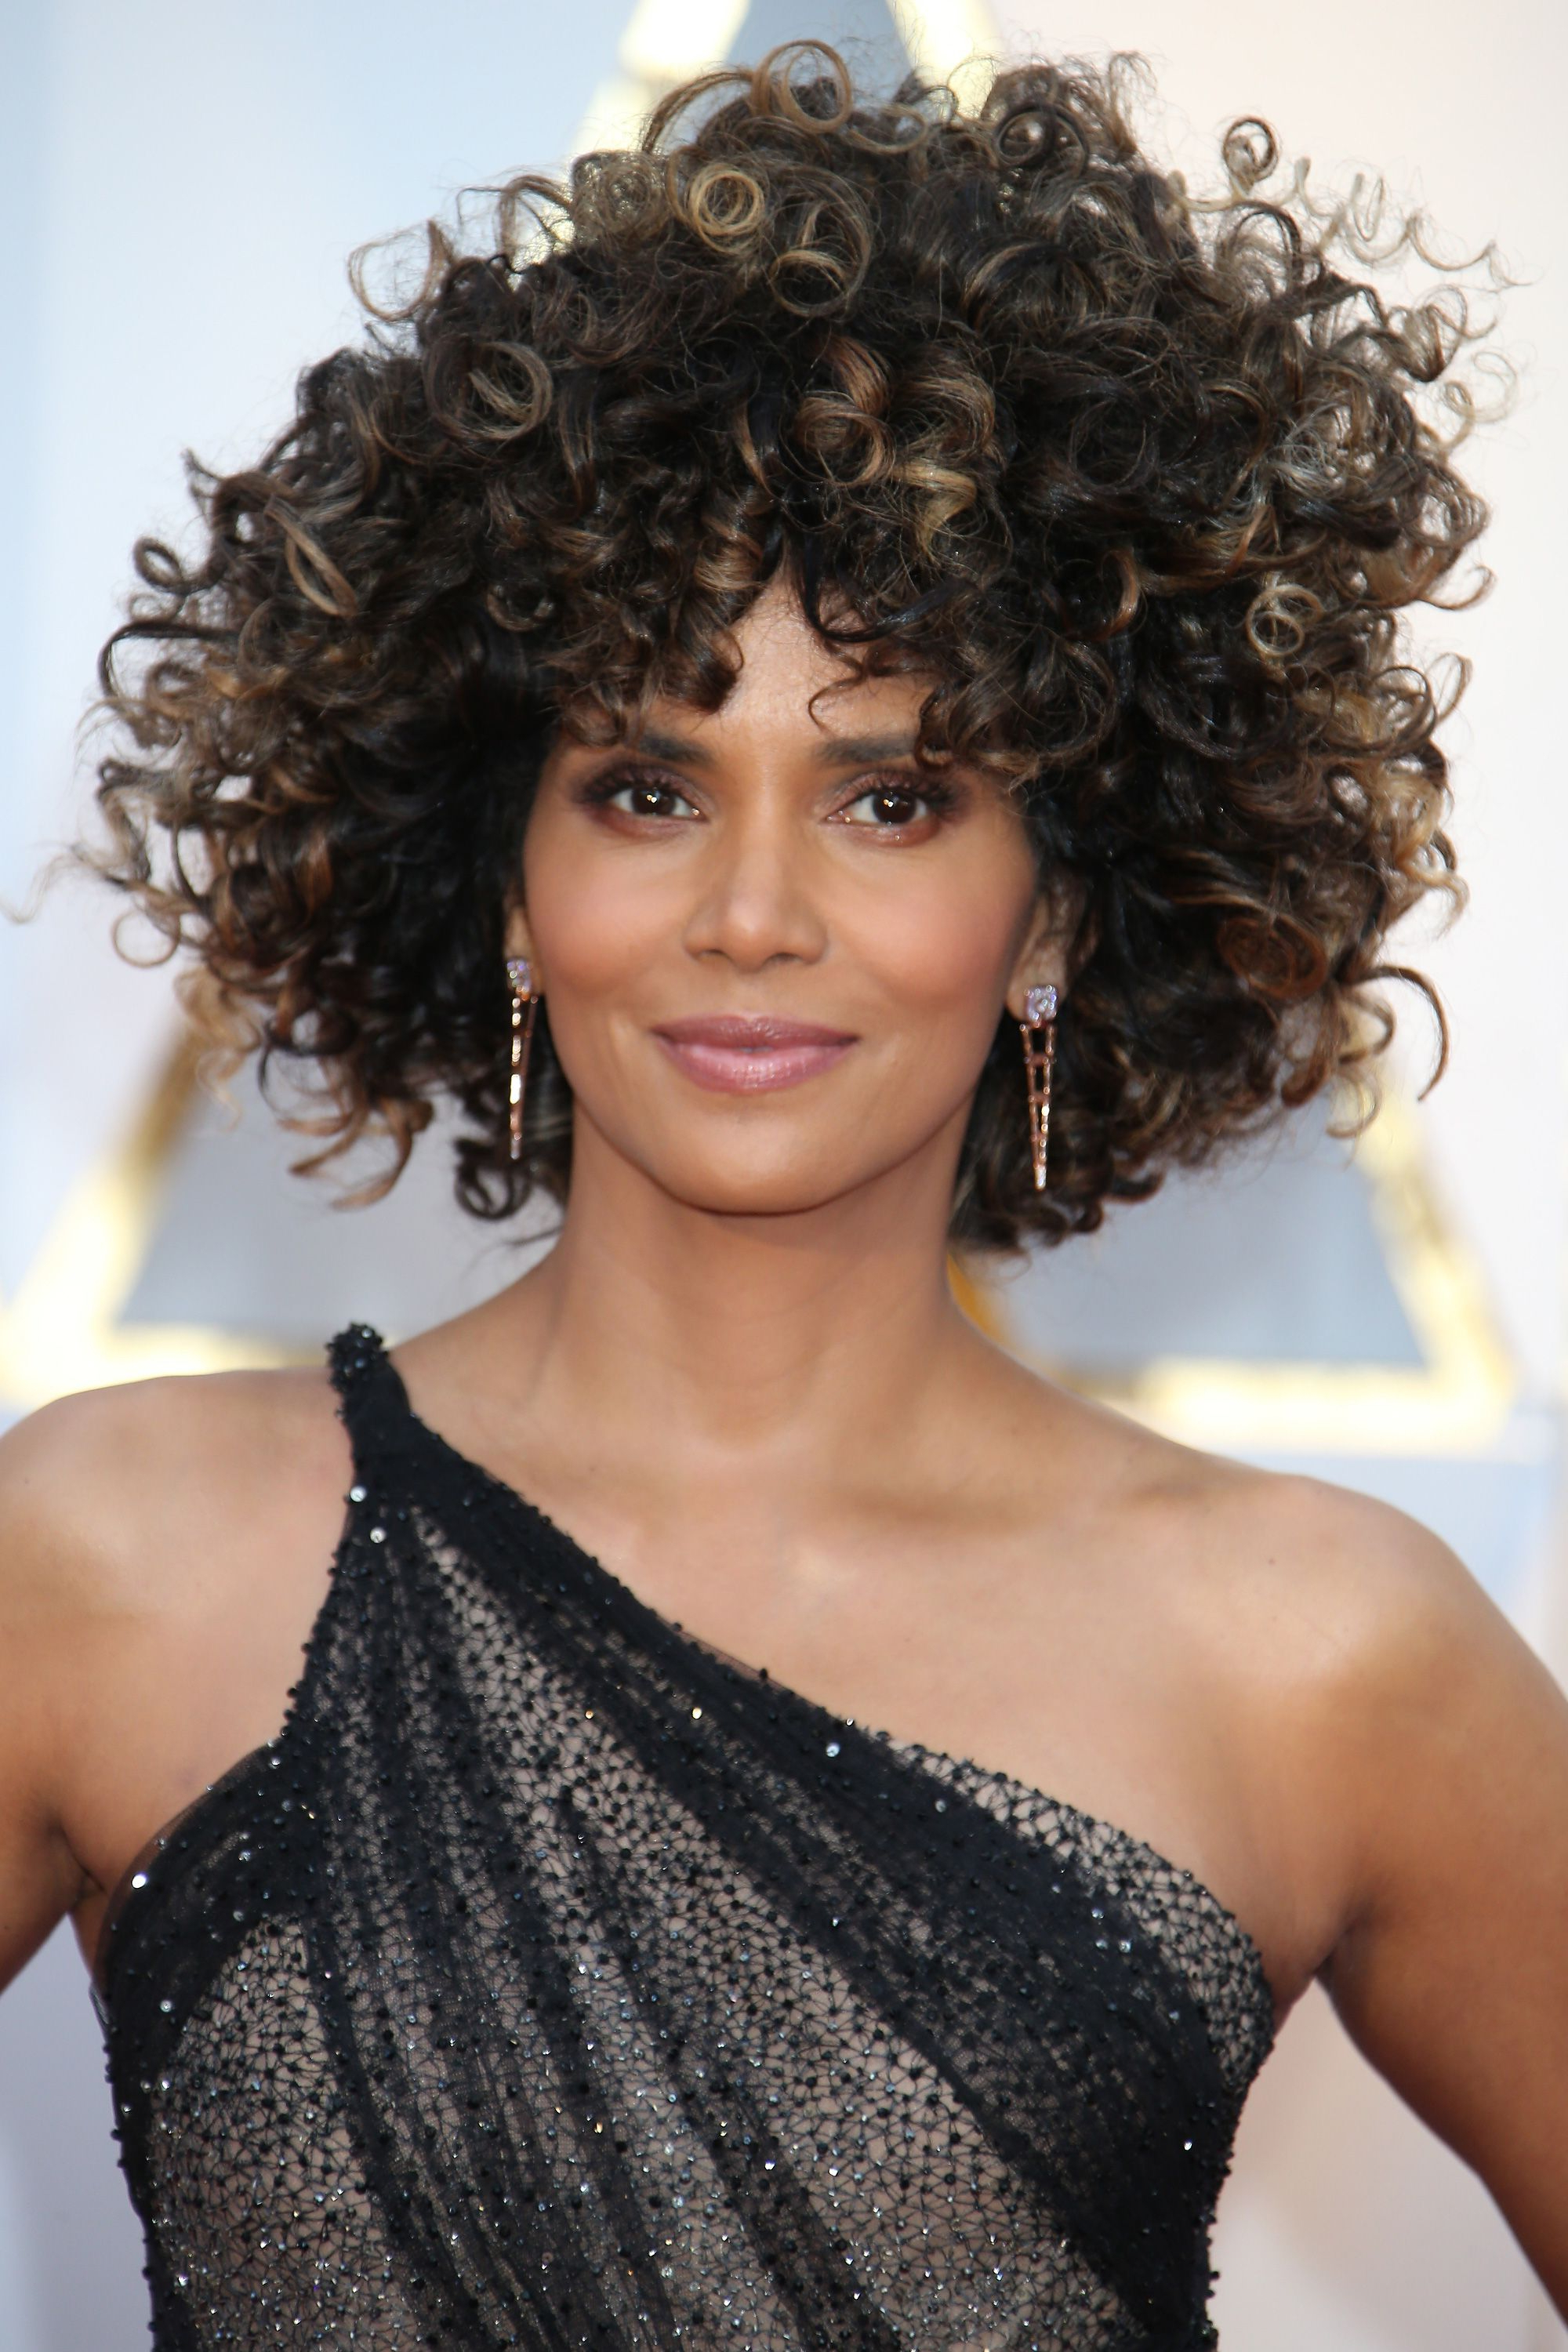 42 Easy Curly Hairstyles – Short, Medium, And Long Haircuts For Inside Most Recently Released Medium Haircuts For Naturally Curly Black Hair (View 5 of 20)